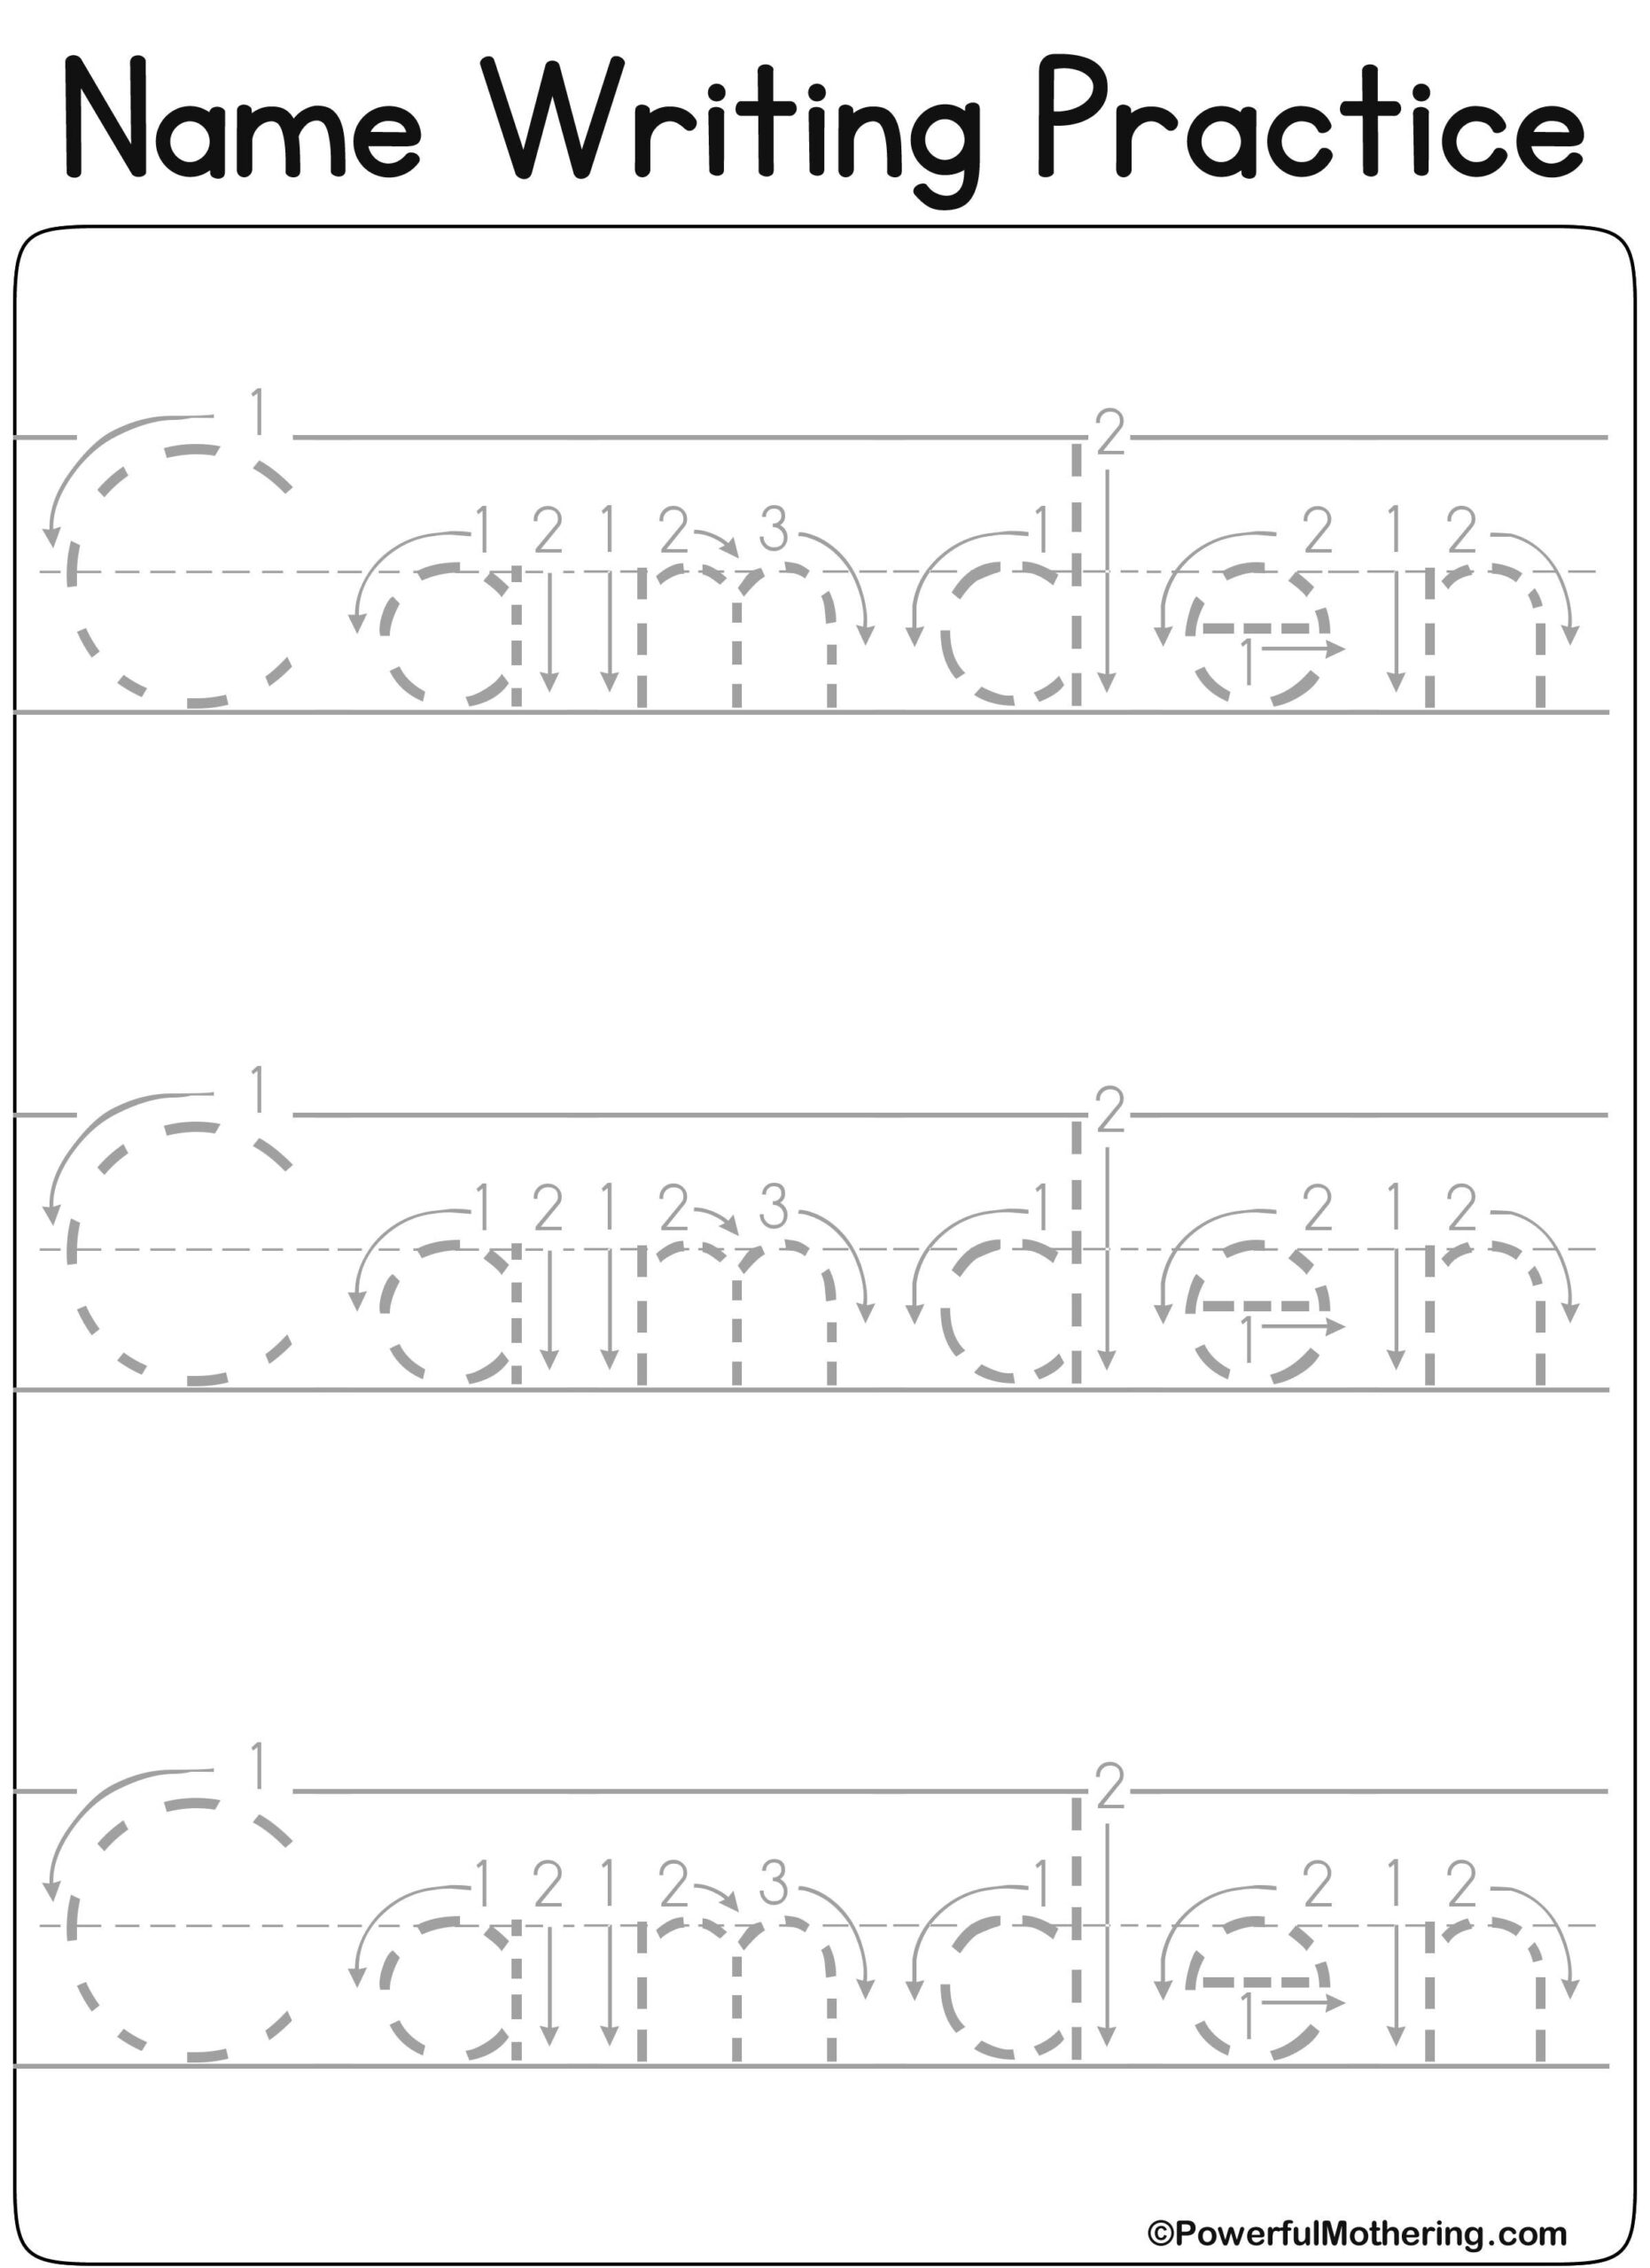 Www.createprintables Custom_Name_Get.php?text&#x3D in Name Tracing Printables Custom